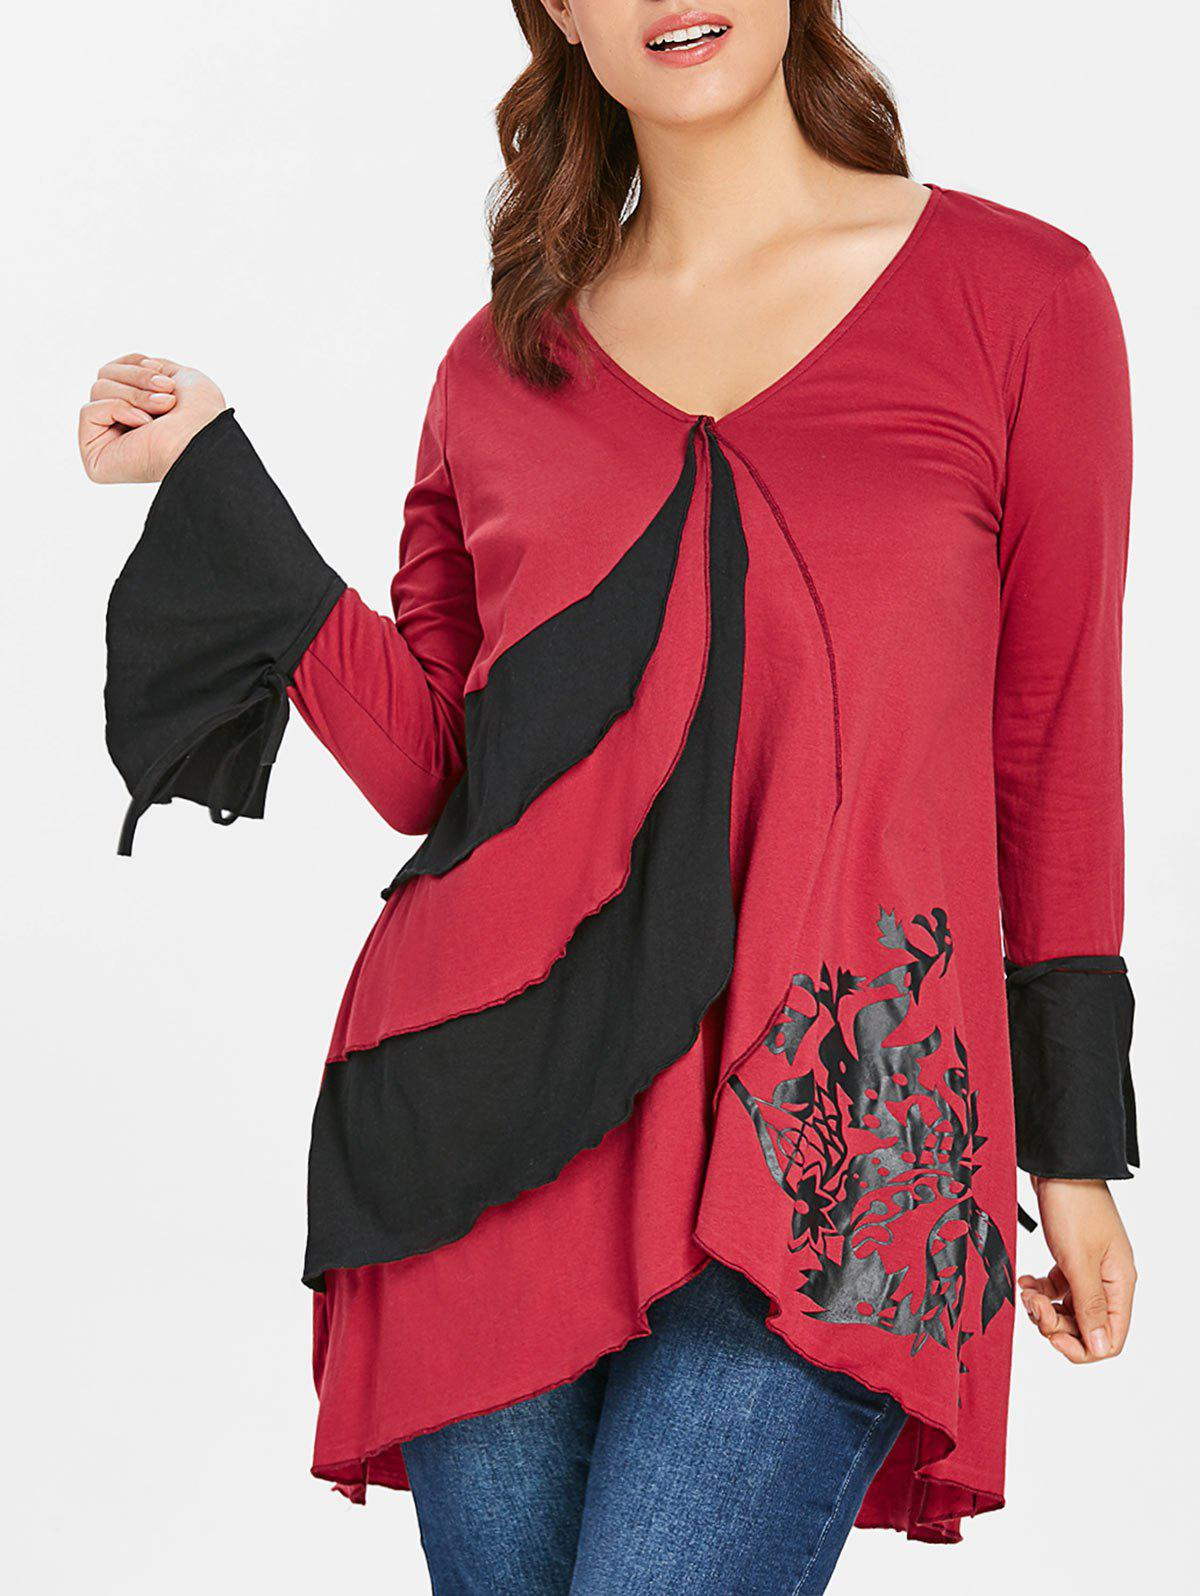 Plus Size V Neck Flare Sleeve T-shirt - RED WINE L